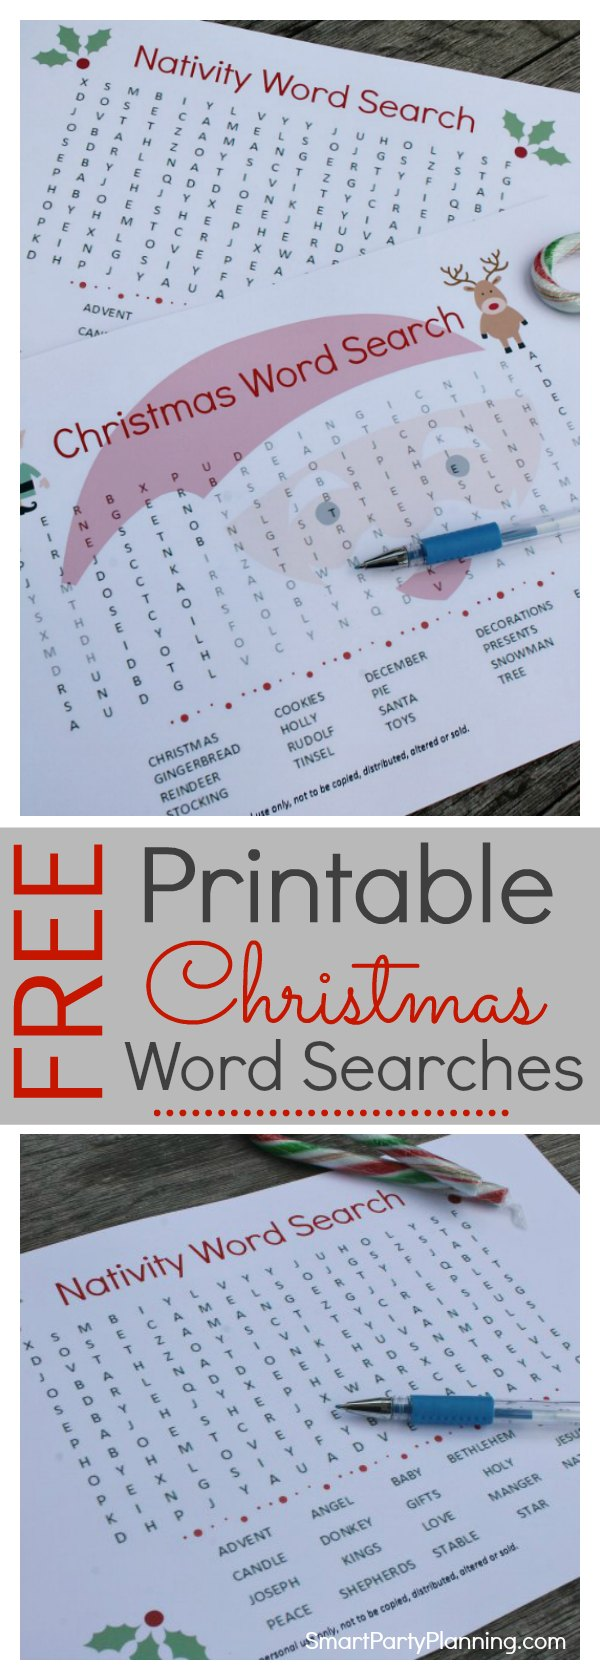 Printable Christmas word search puzzles are the perfect solution for an activity for the kids at home or in the classroom. Not only are Christmas word search puzzles fun, but they are also educational too.  Let the kids practice their spelling whilst they are having a whole lot of fun. There are two designs to choose from, so get yours now.  They are great for the festive season. Oh, did I mention that they are free? #Christmas #Printable #Free #Kids